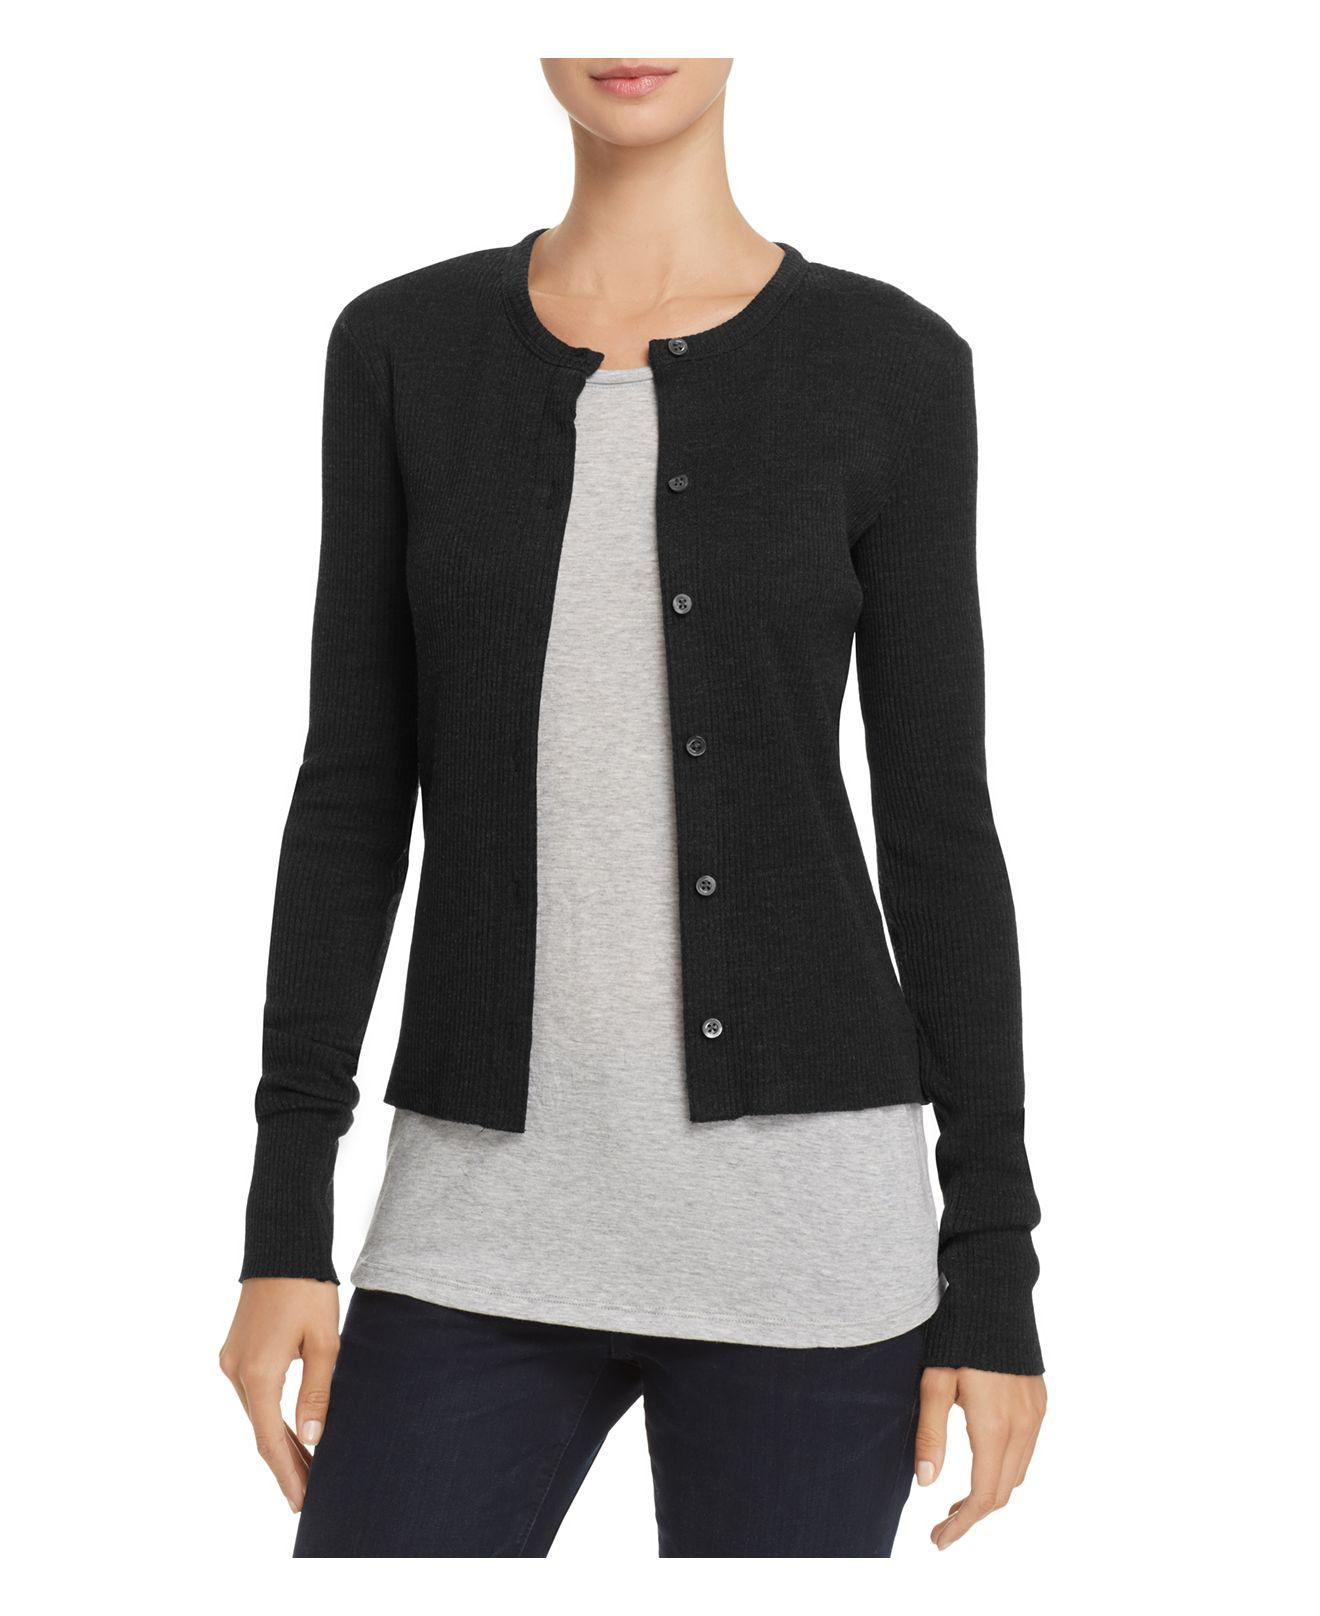 Theory Basic Ribbed Cardigan Sweater in Black | Lyst